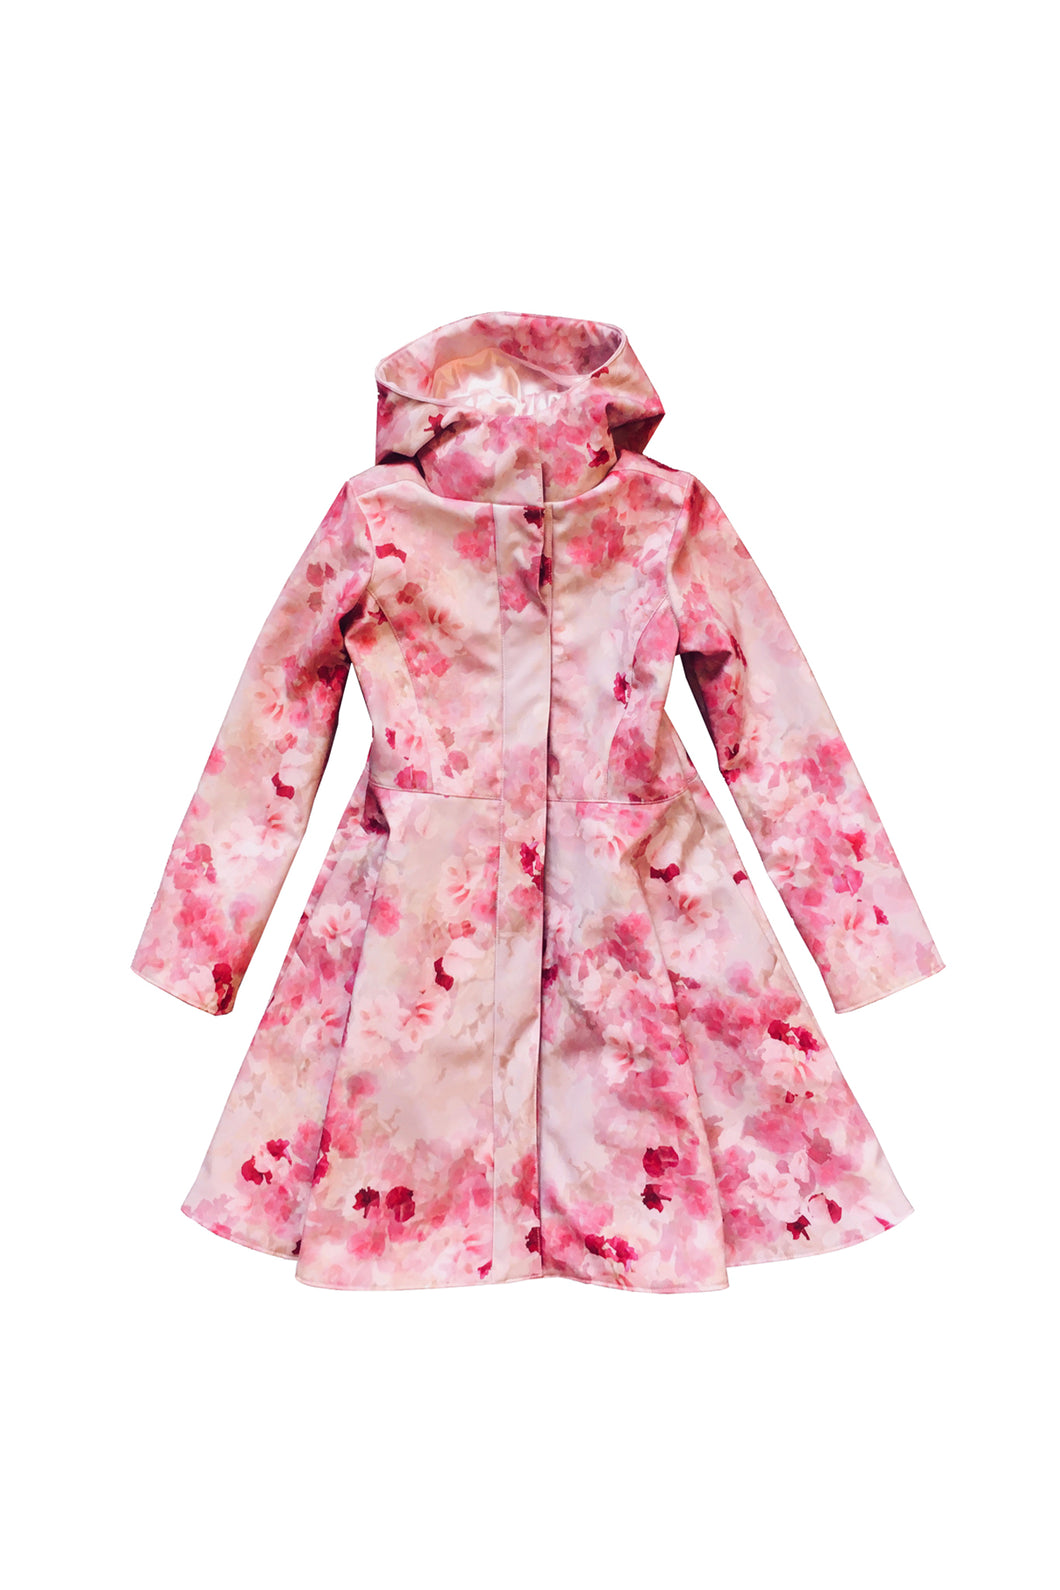 Pink Fit and Flare Raincoat for girls front